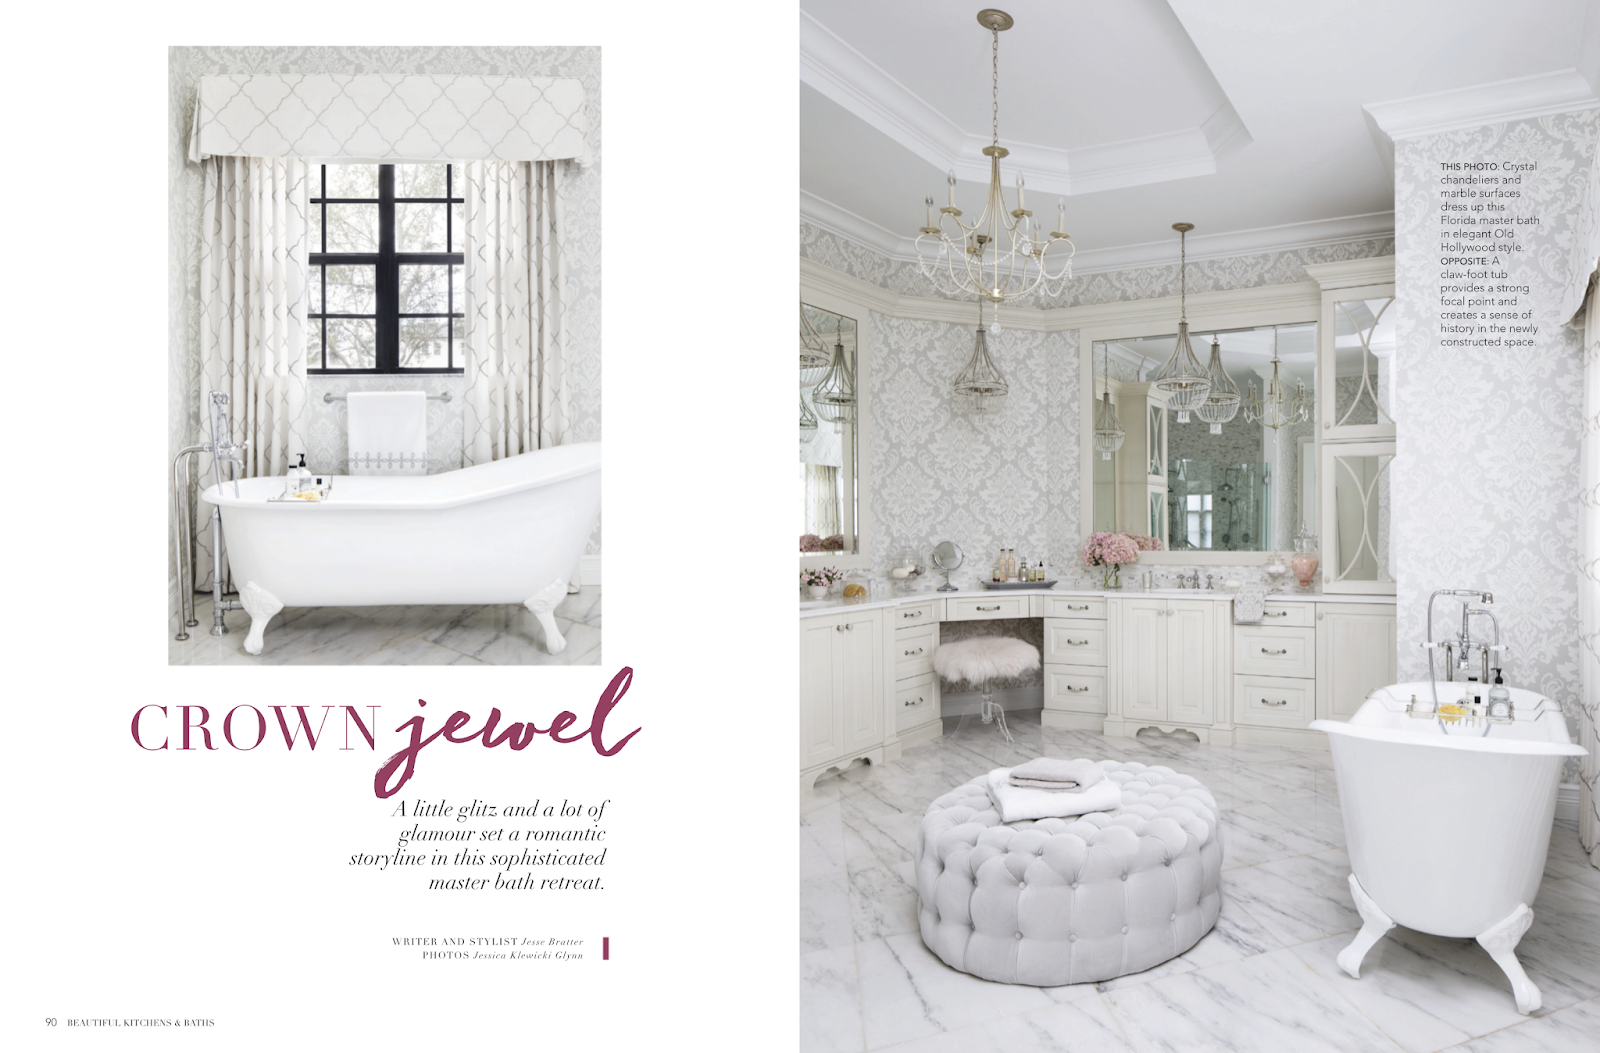 Jessica Glynn: Beautiful Kitchens & Baths features Krista + Home